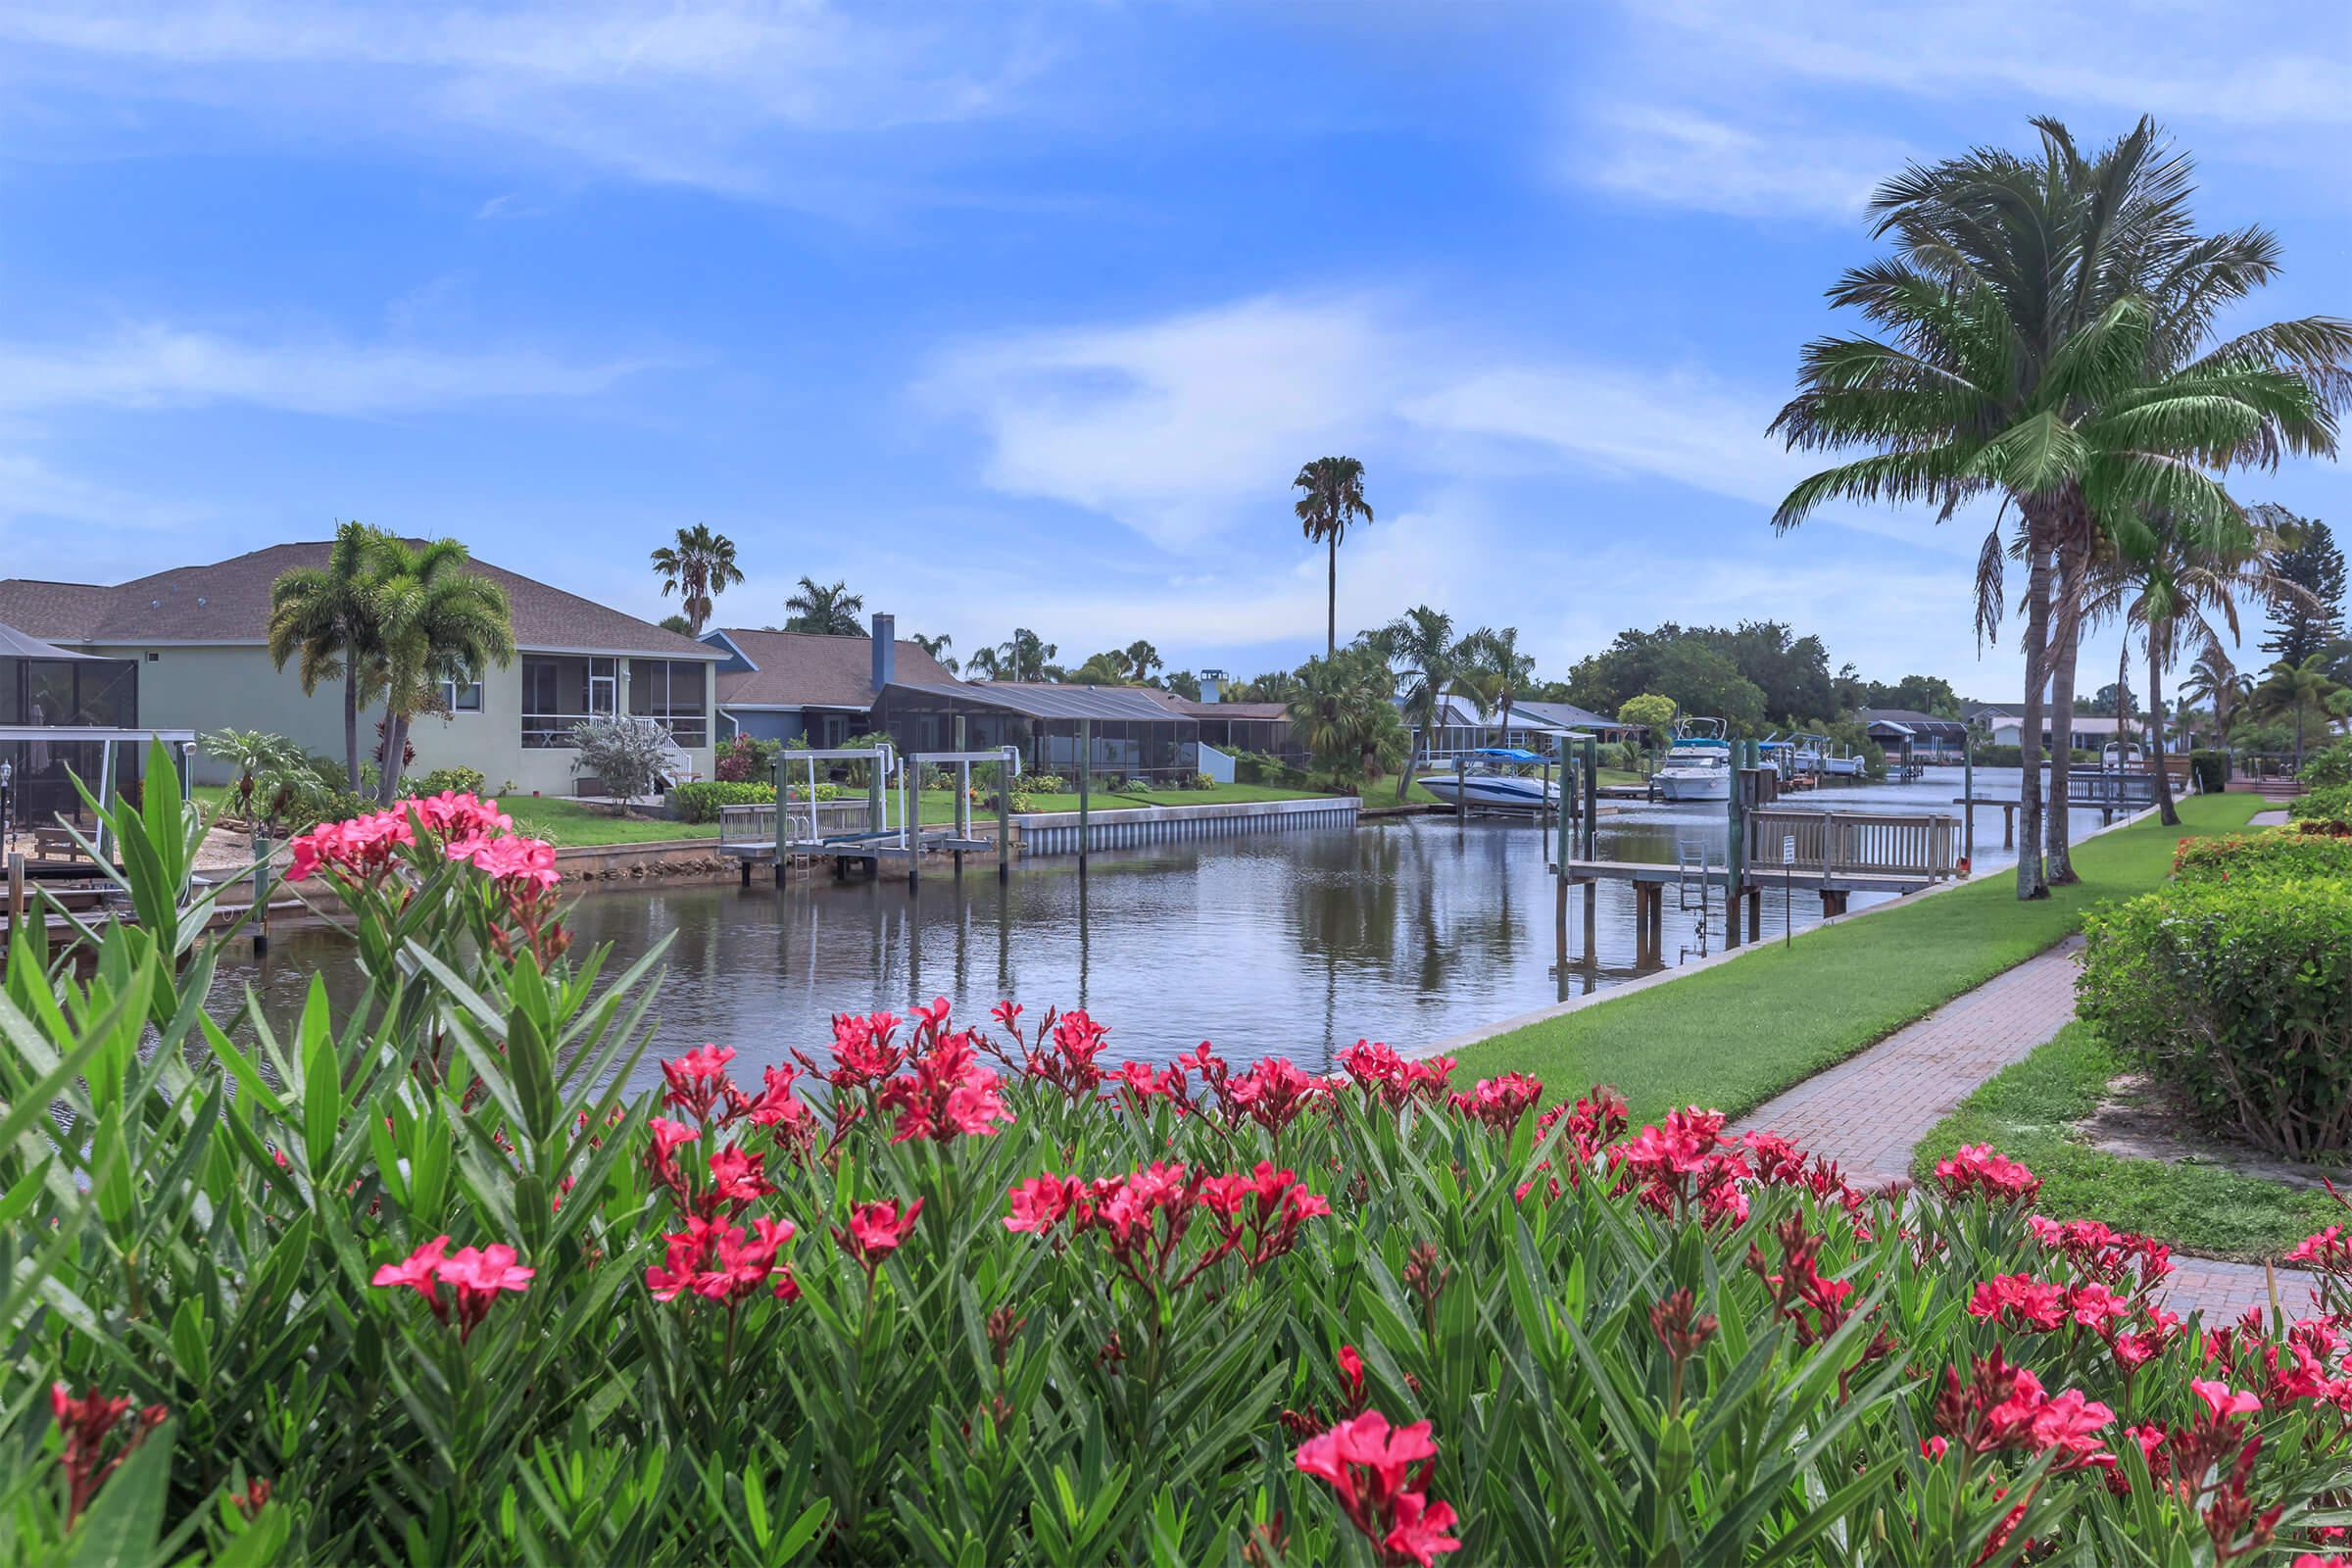 a colorful flower garden in front of a lake surrounded by palm trees